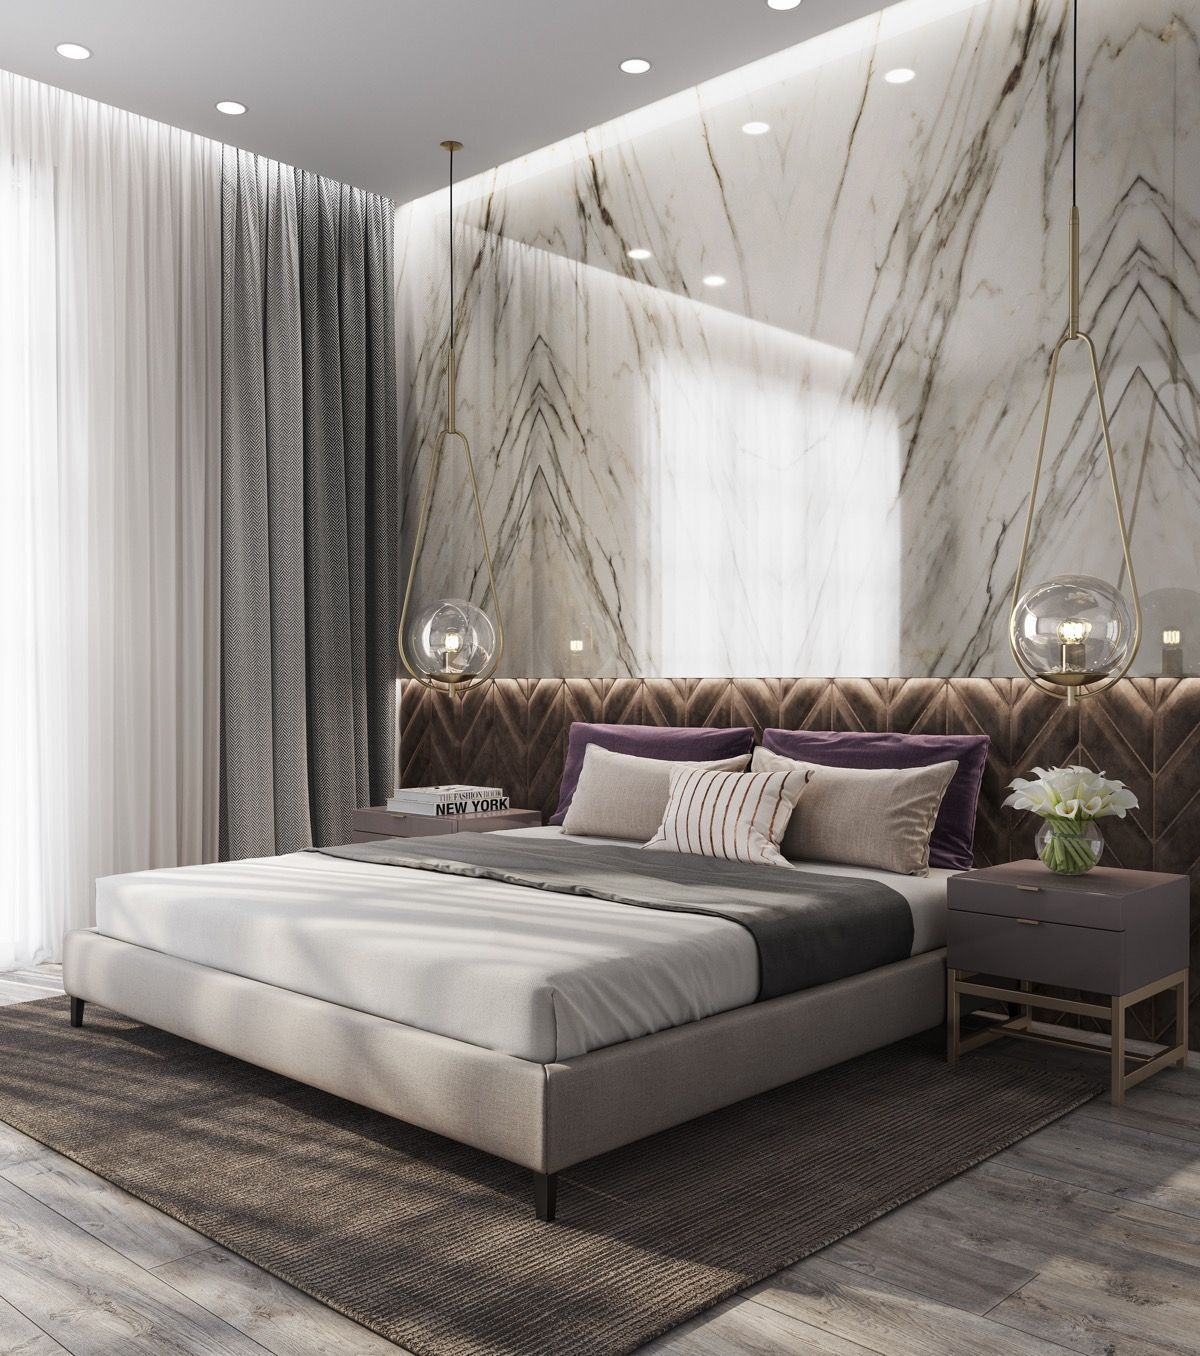 Enhance Your Senses With Luxury Home Decor Modern Luxury Bedroom